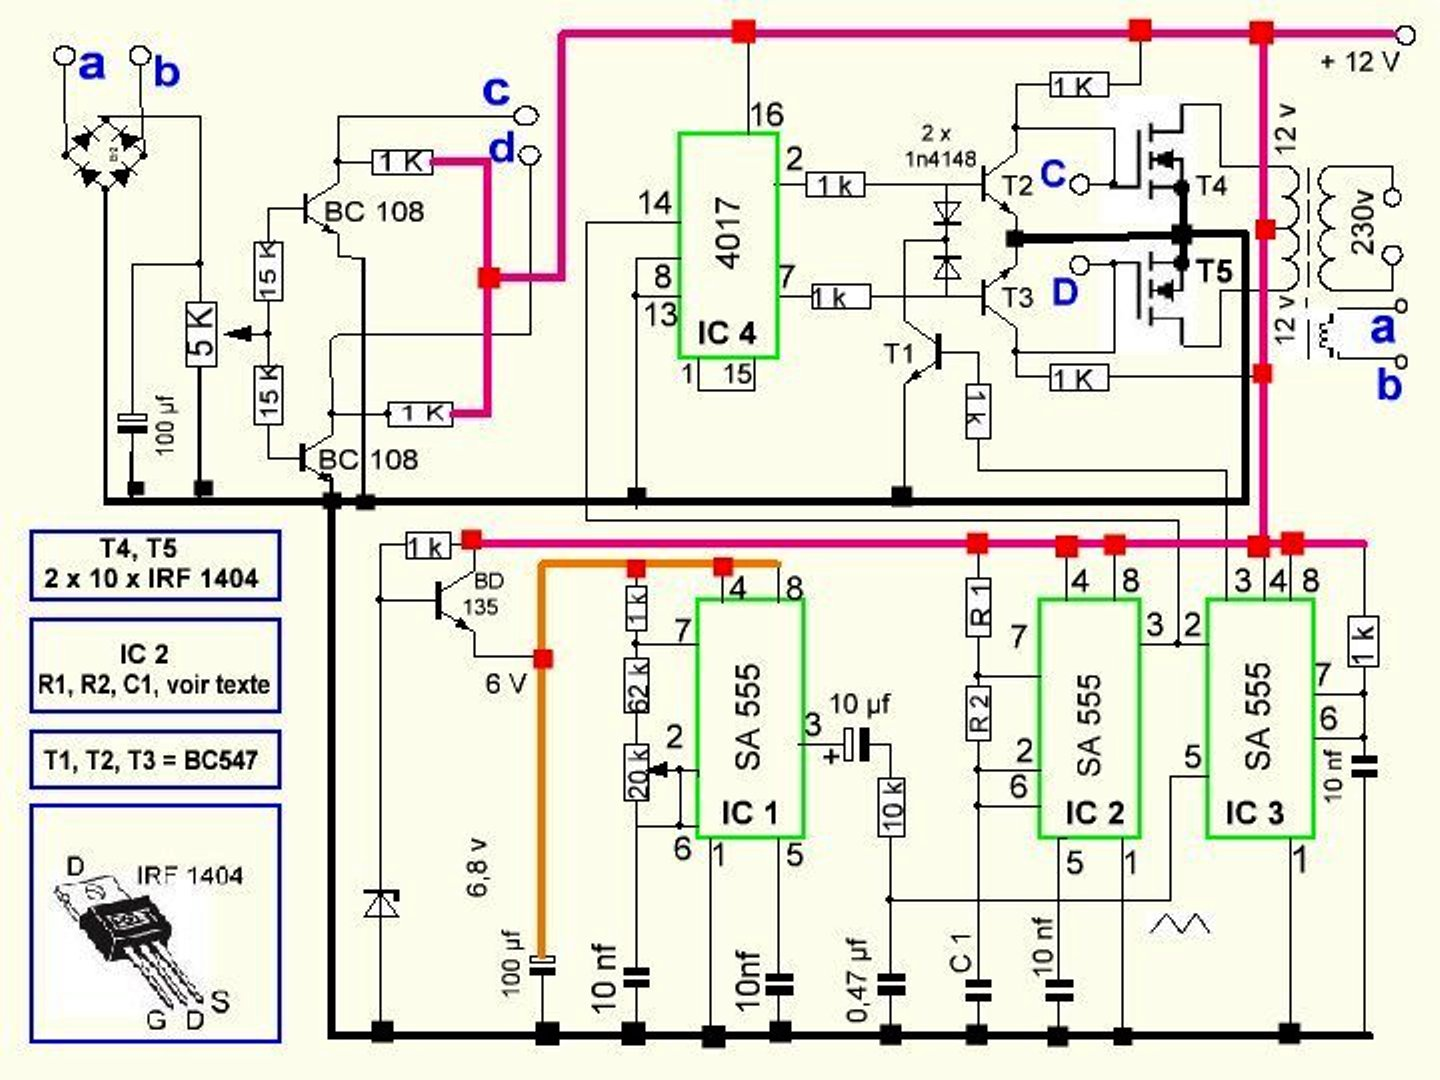 10 watt led driver circuit diagram 2003 chevy avalanche tail light wiring 300 watts pwm controlled pure sine wave inverter